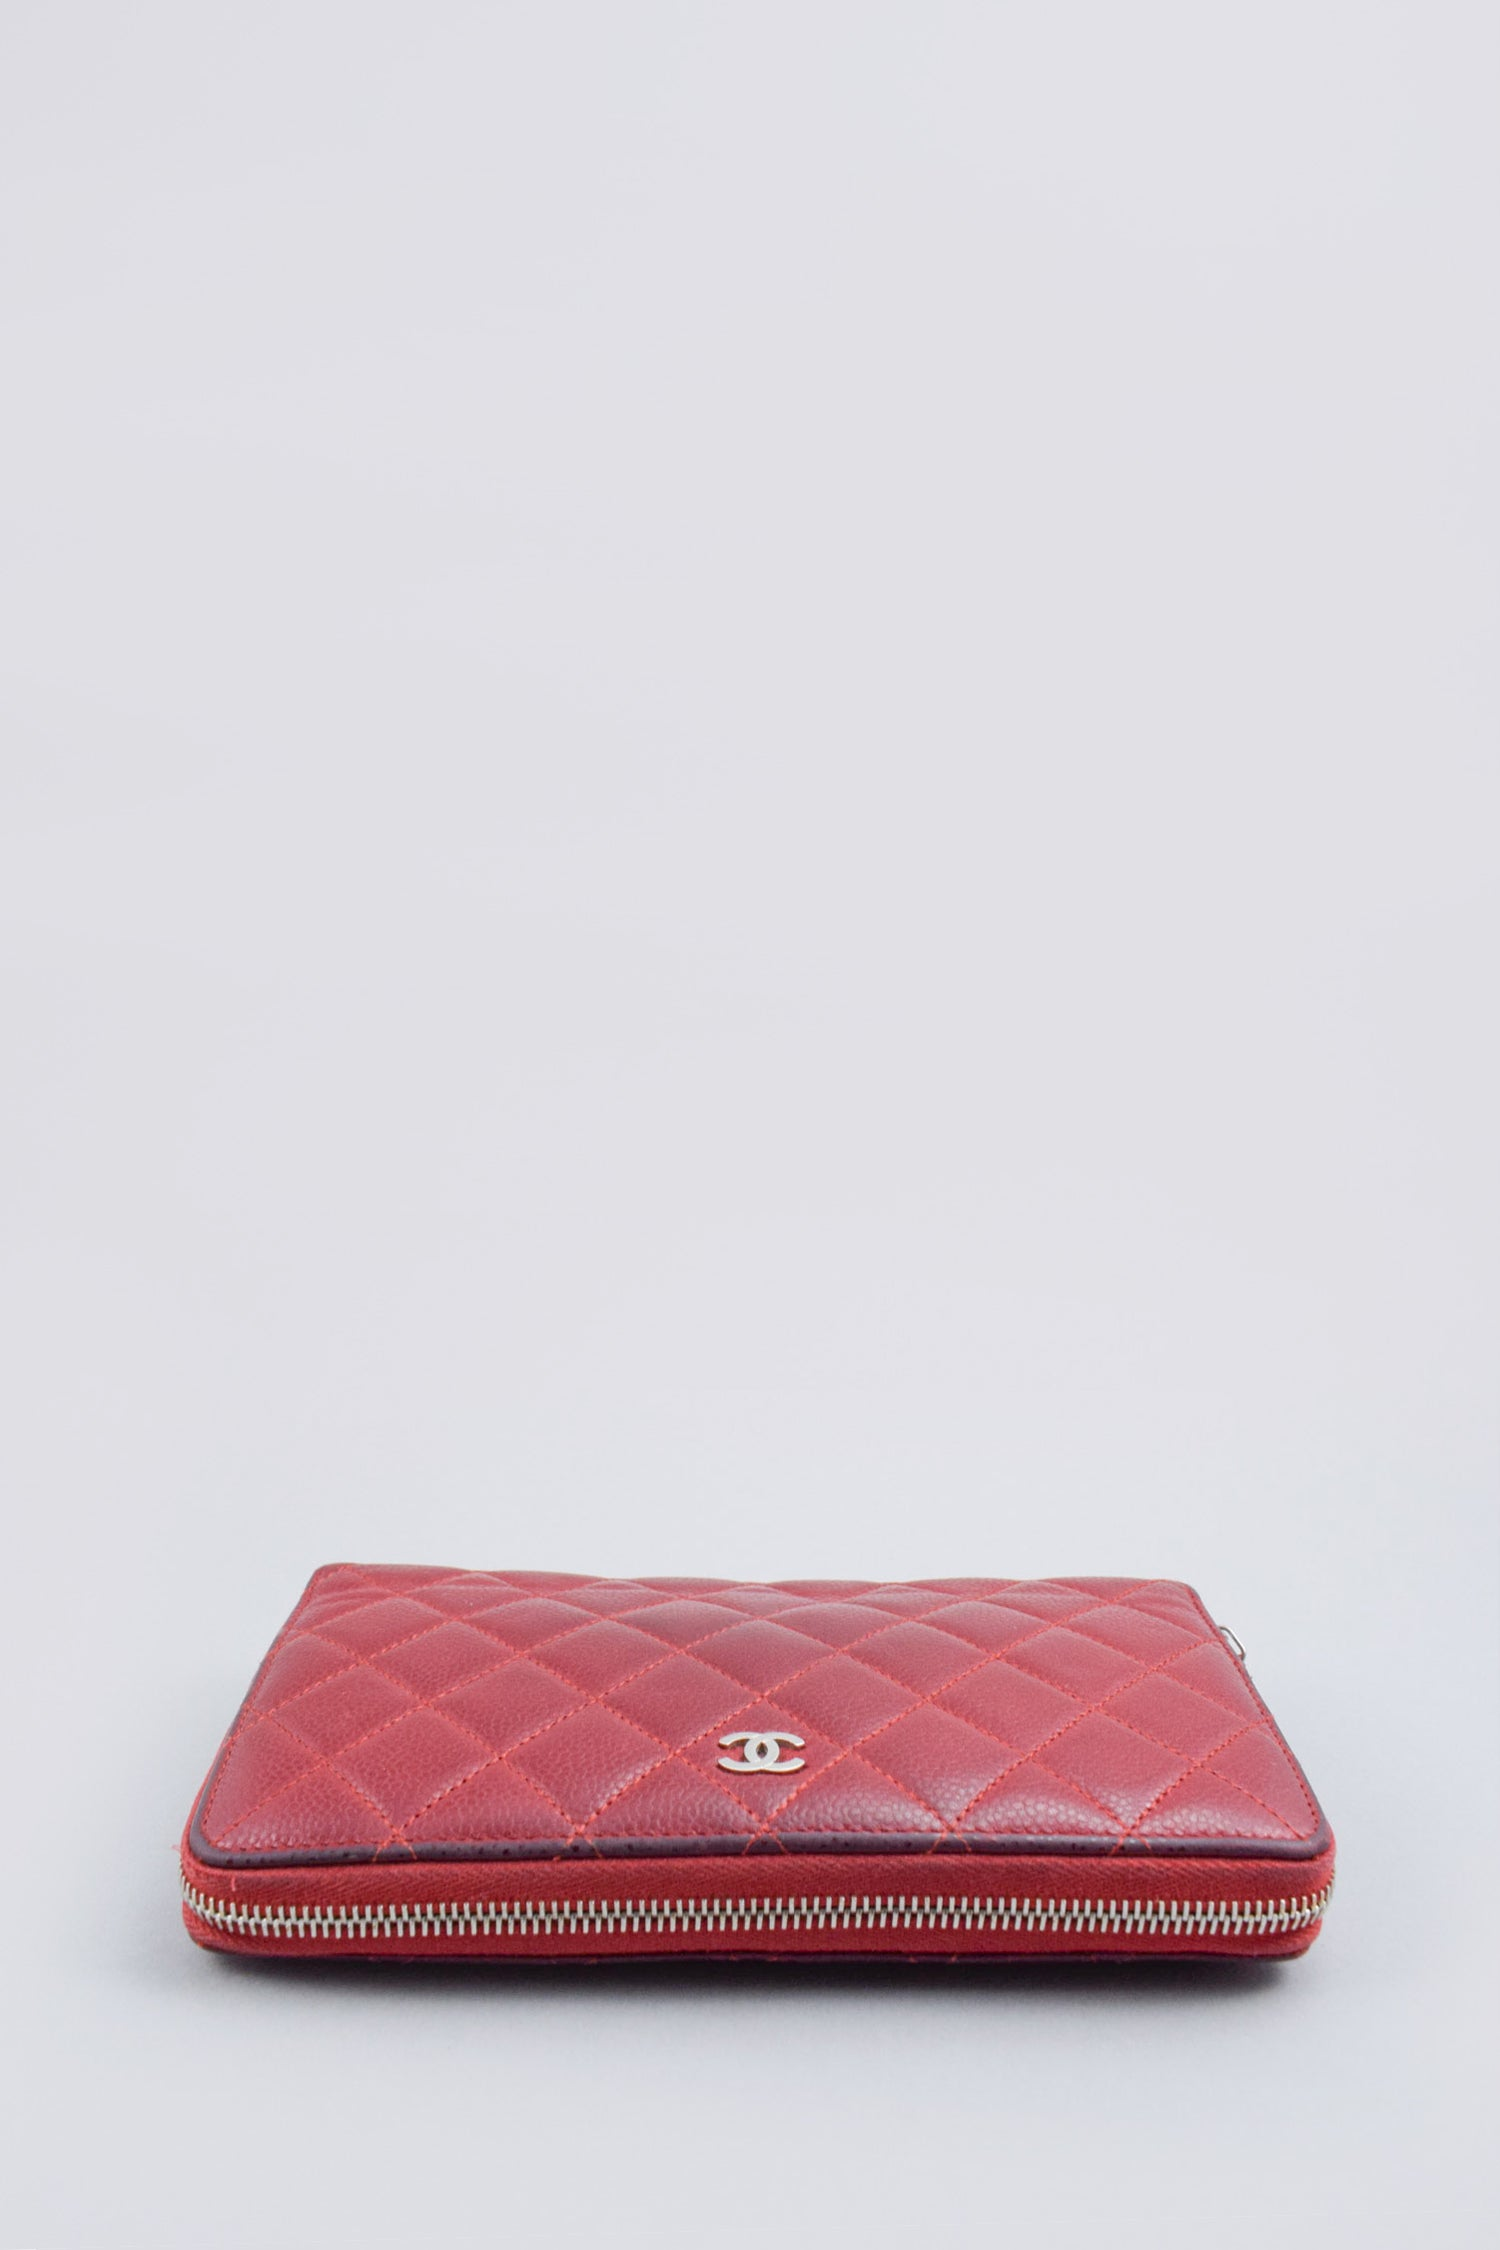 Chanel Burgundy Quilted Large Organizer Wallet